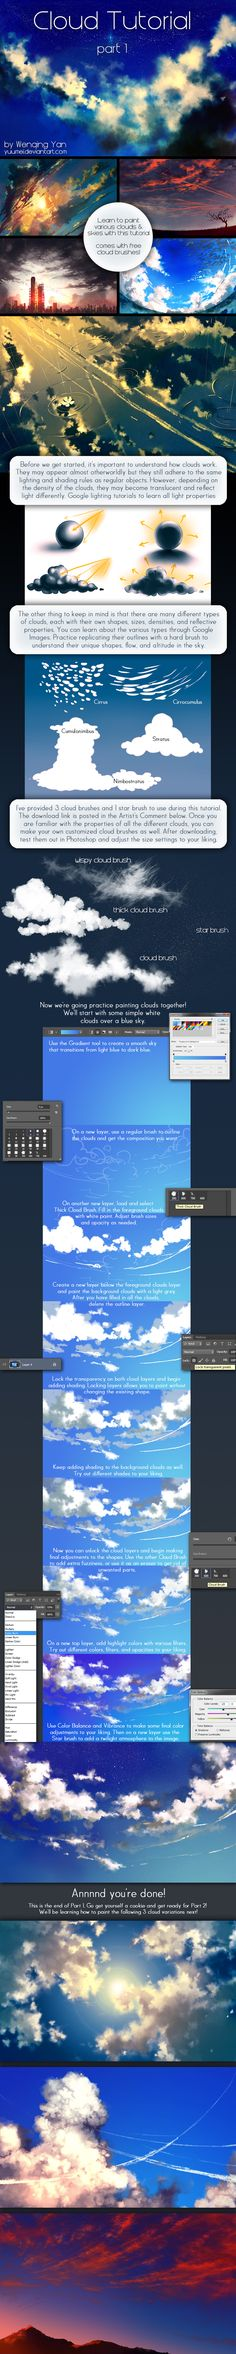 Cloud Tutorial Part 1 by yuumei.deviantart.com on #deviantART